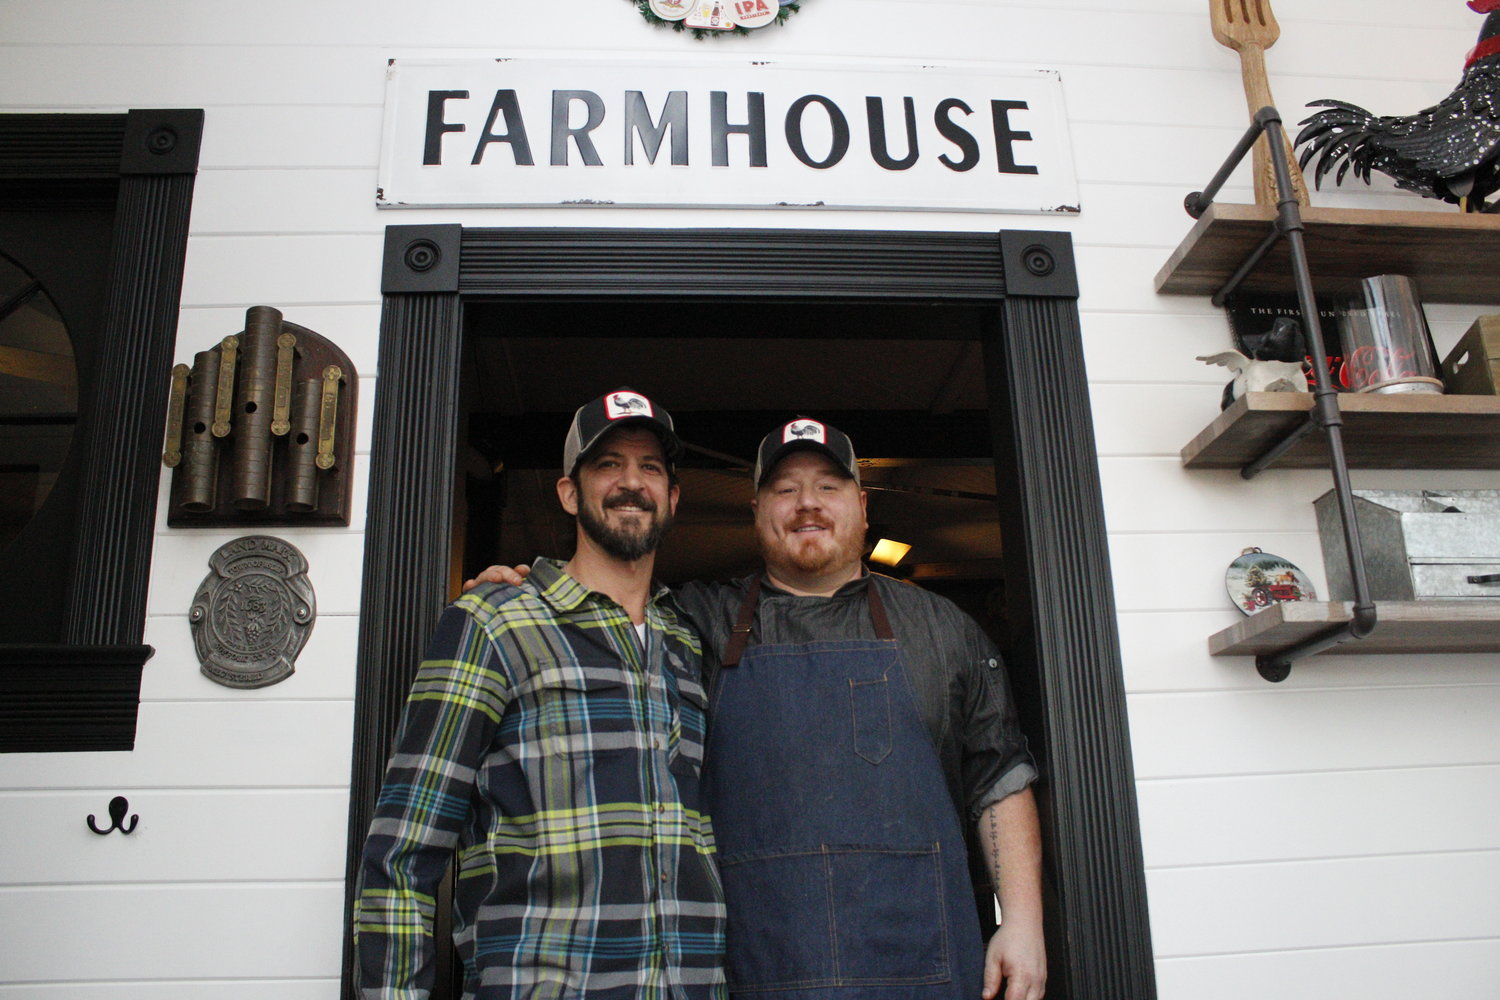 Owner Justin Tempelman (left) and chef Shane LeBlanc (right) are bringing farm-to-table foods to Bayport.